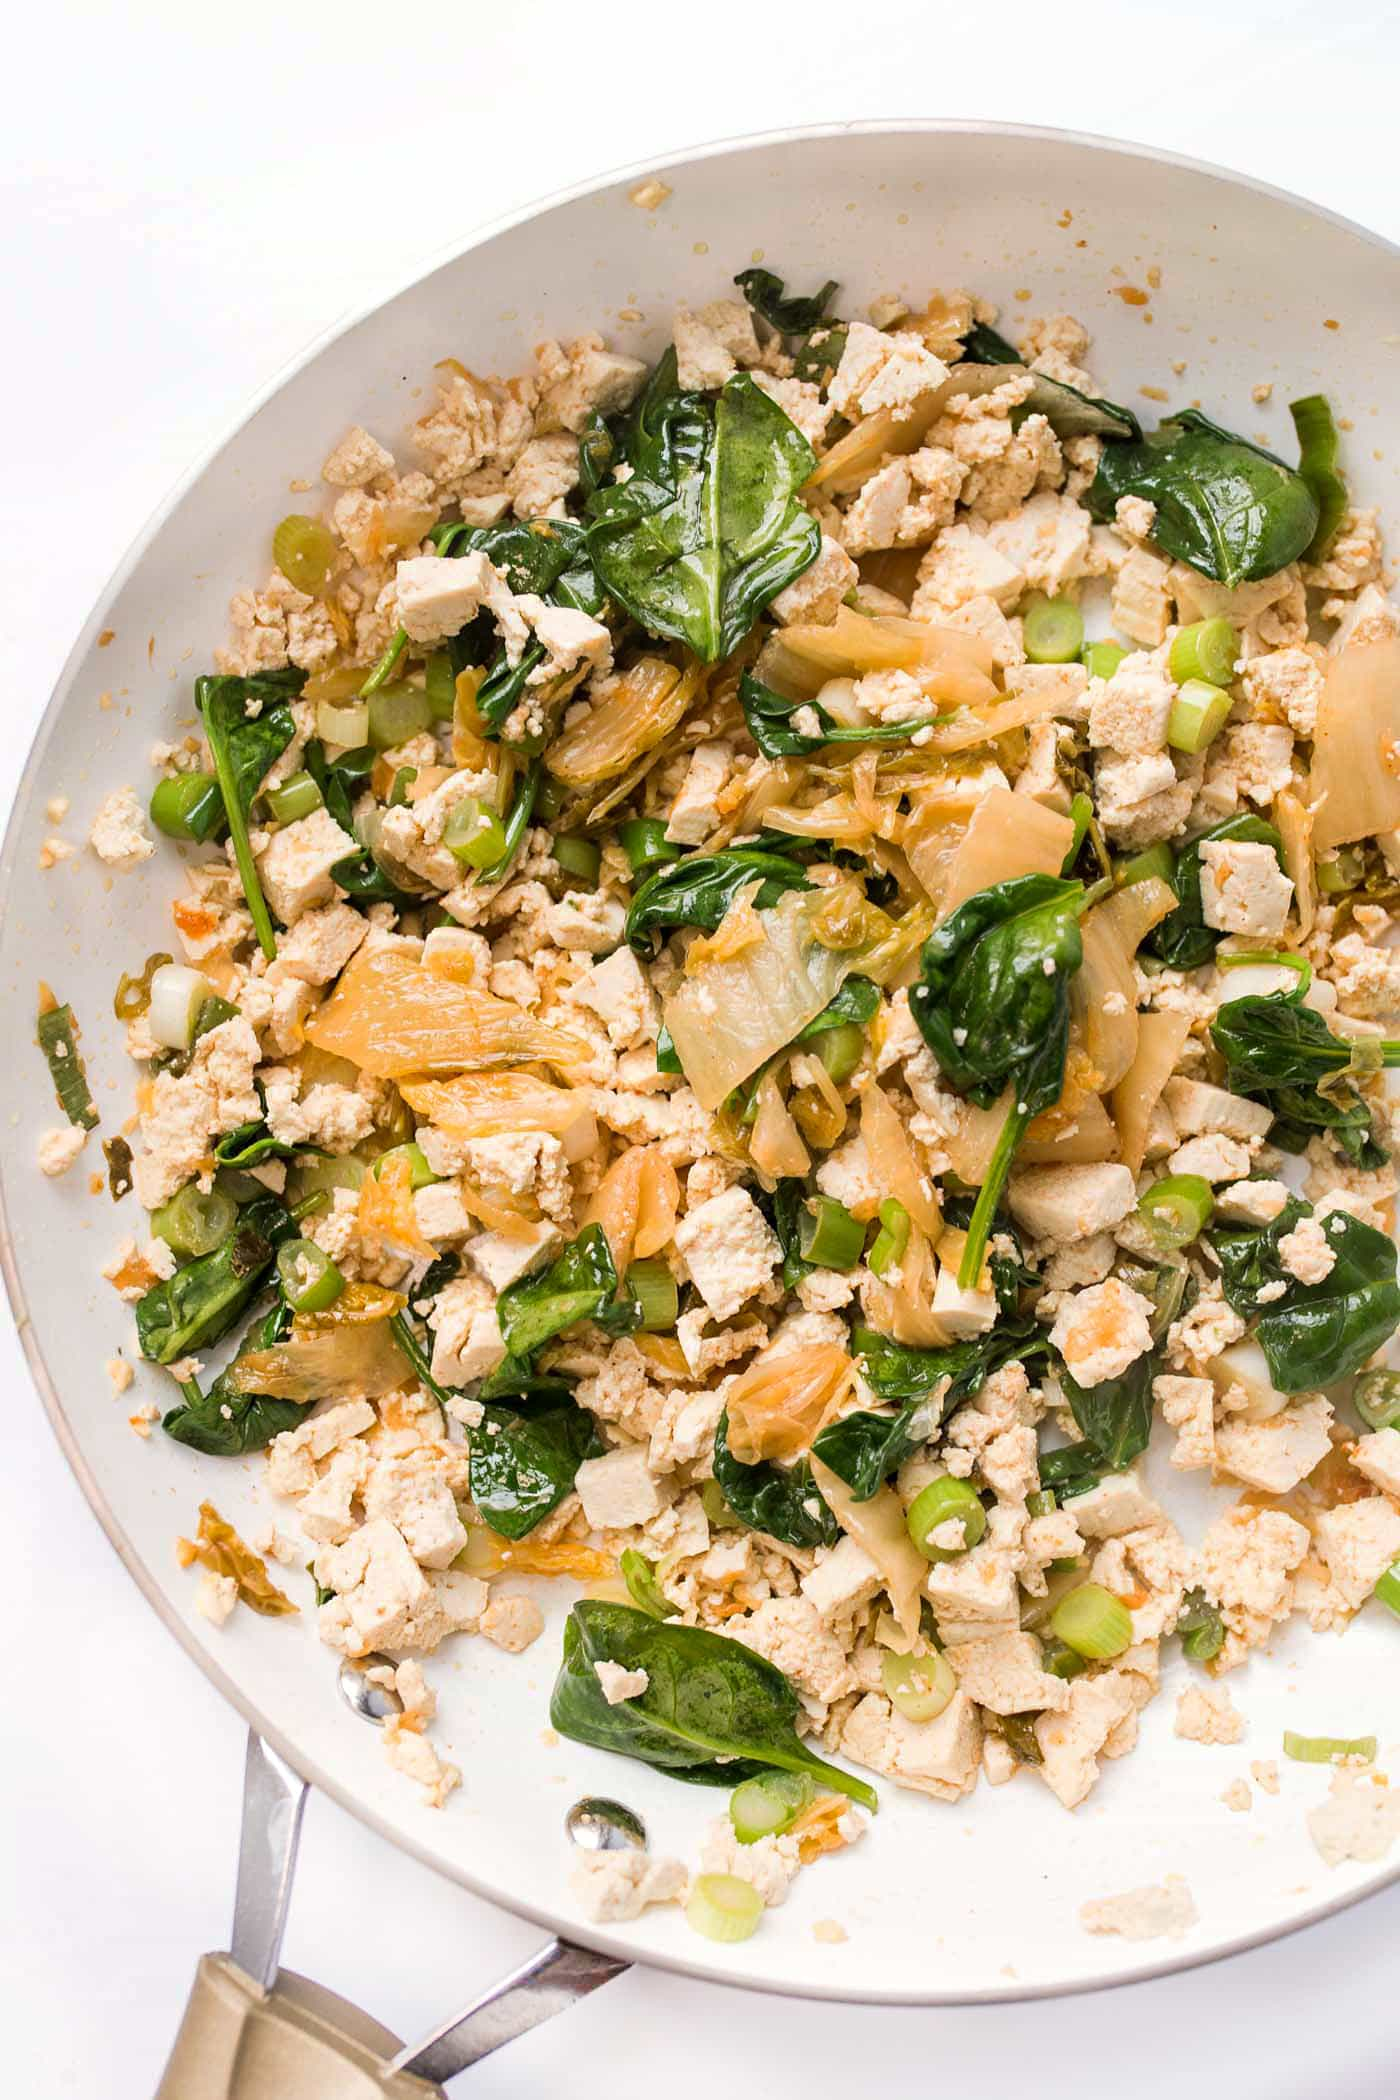 5-Ingredient Tofu Scramble in the making! With kimchi, spinach and green onions for crunch!